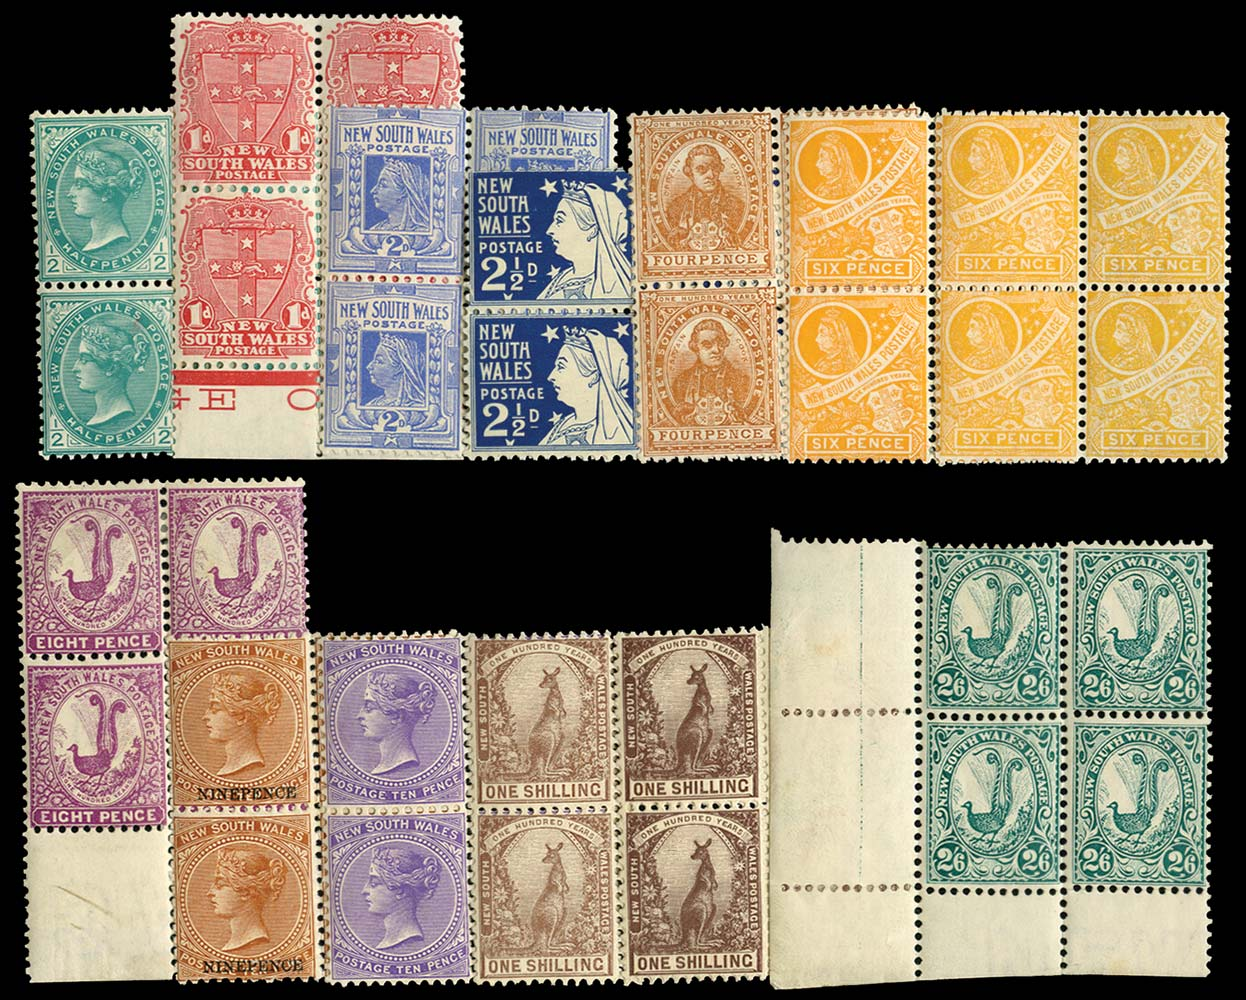 NEW SOUTH WALES 1902  SG313/26 Mint